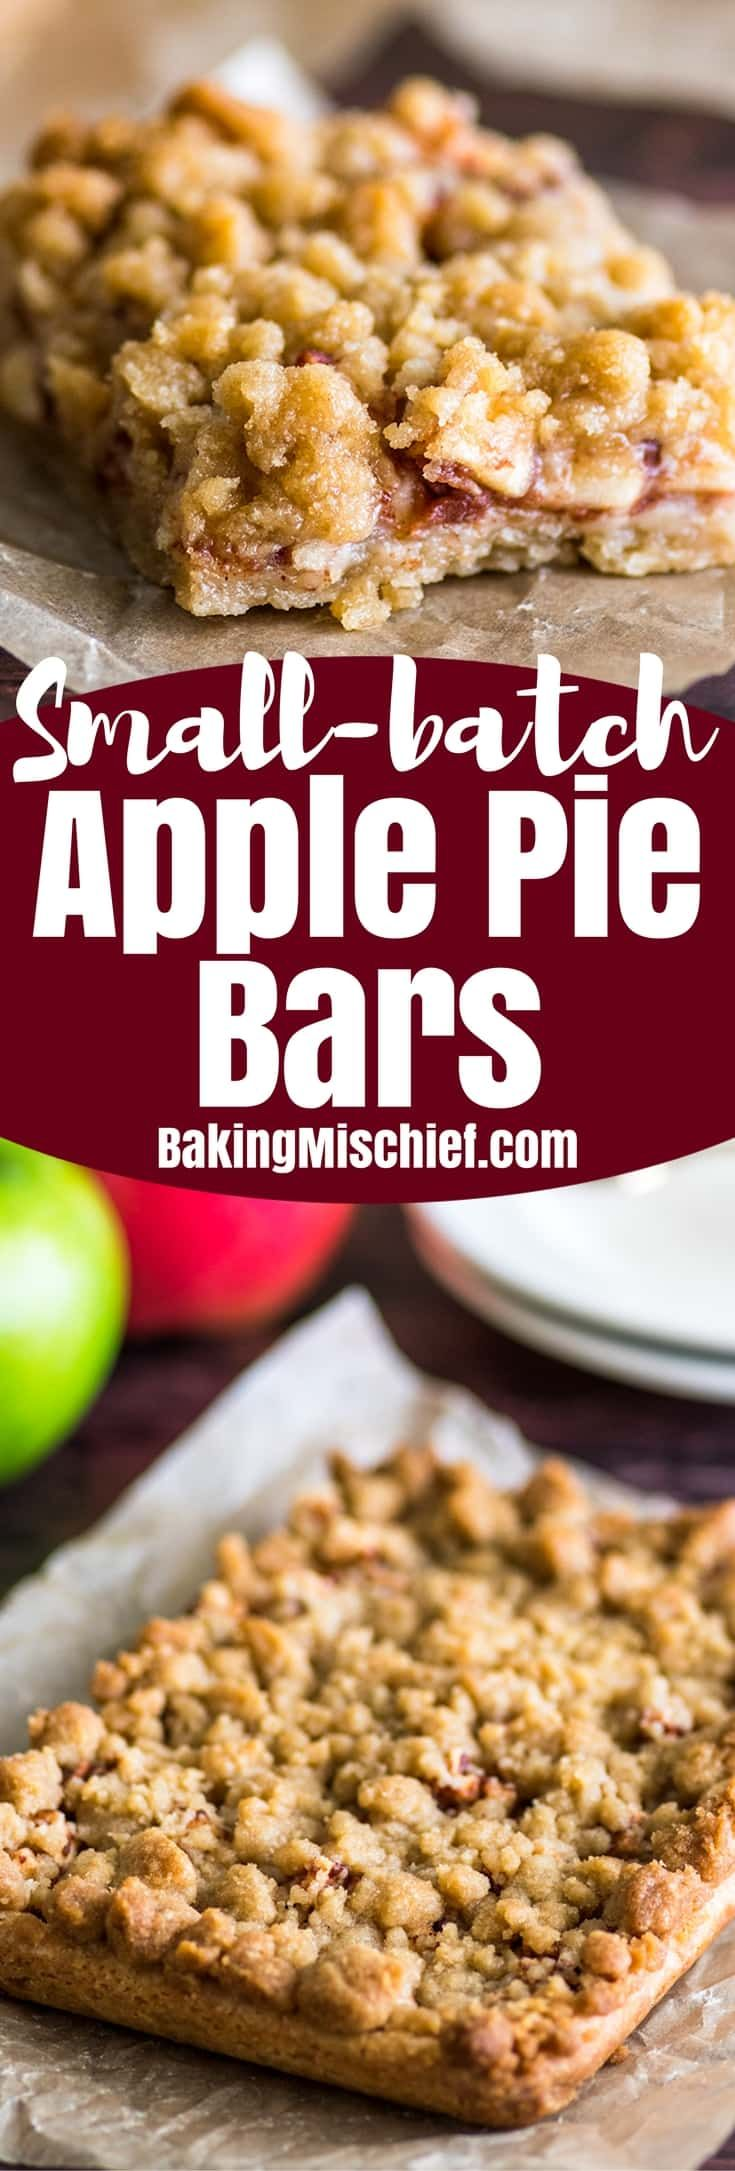 You will love these easy Smallbatch Apple Pie Bars with